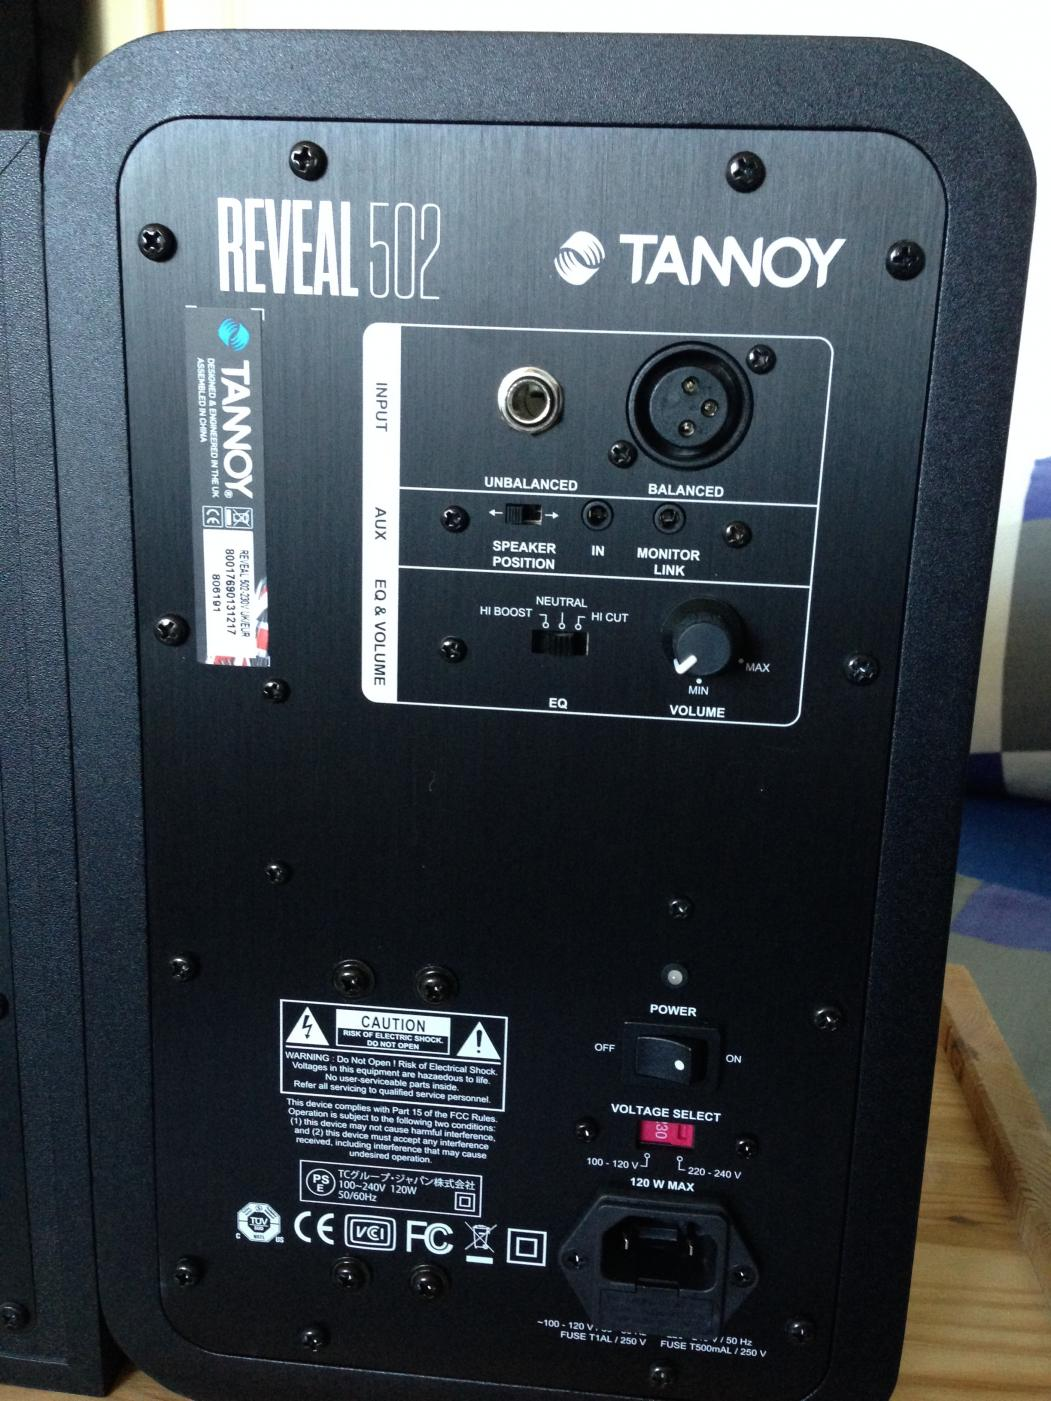 Tannoy Reveal 502 | Musiker-Board